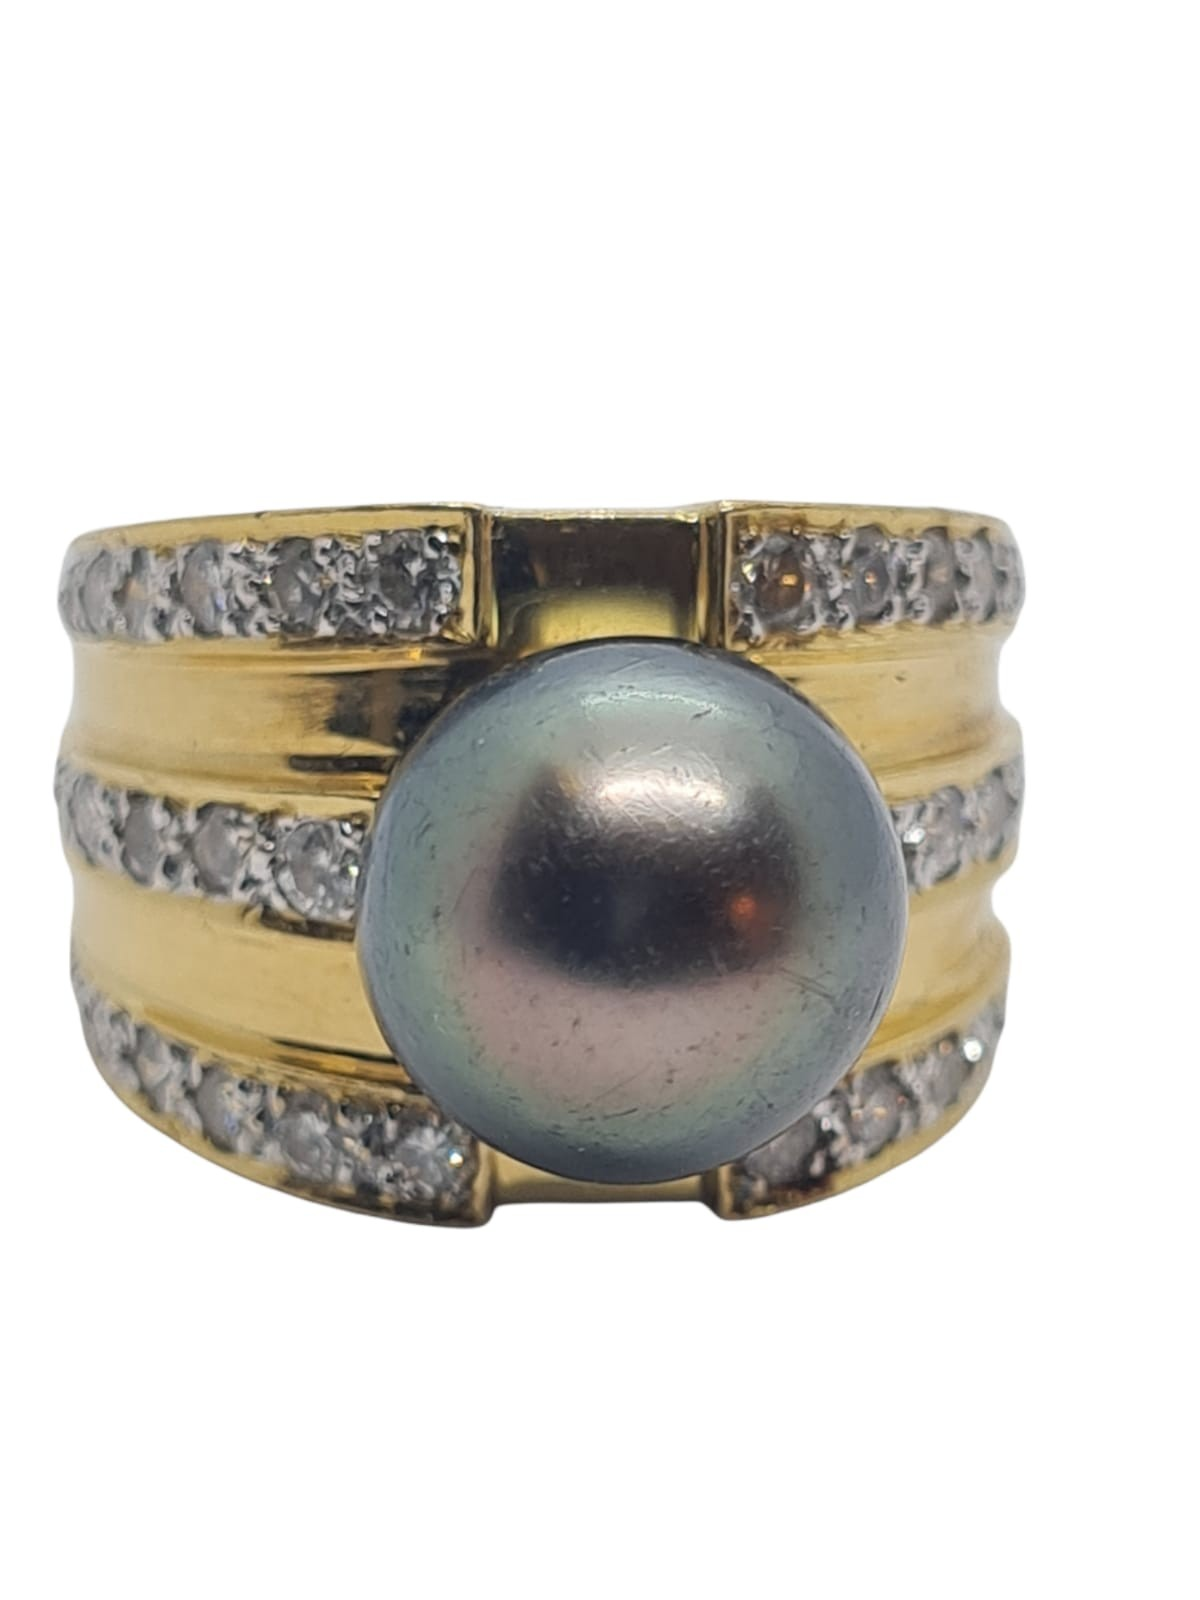 18k yellow gold with Tahitian pearl centre and decorated with 1.50ct diamonds approx, weight 12.8g